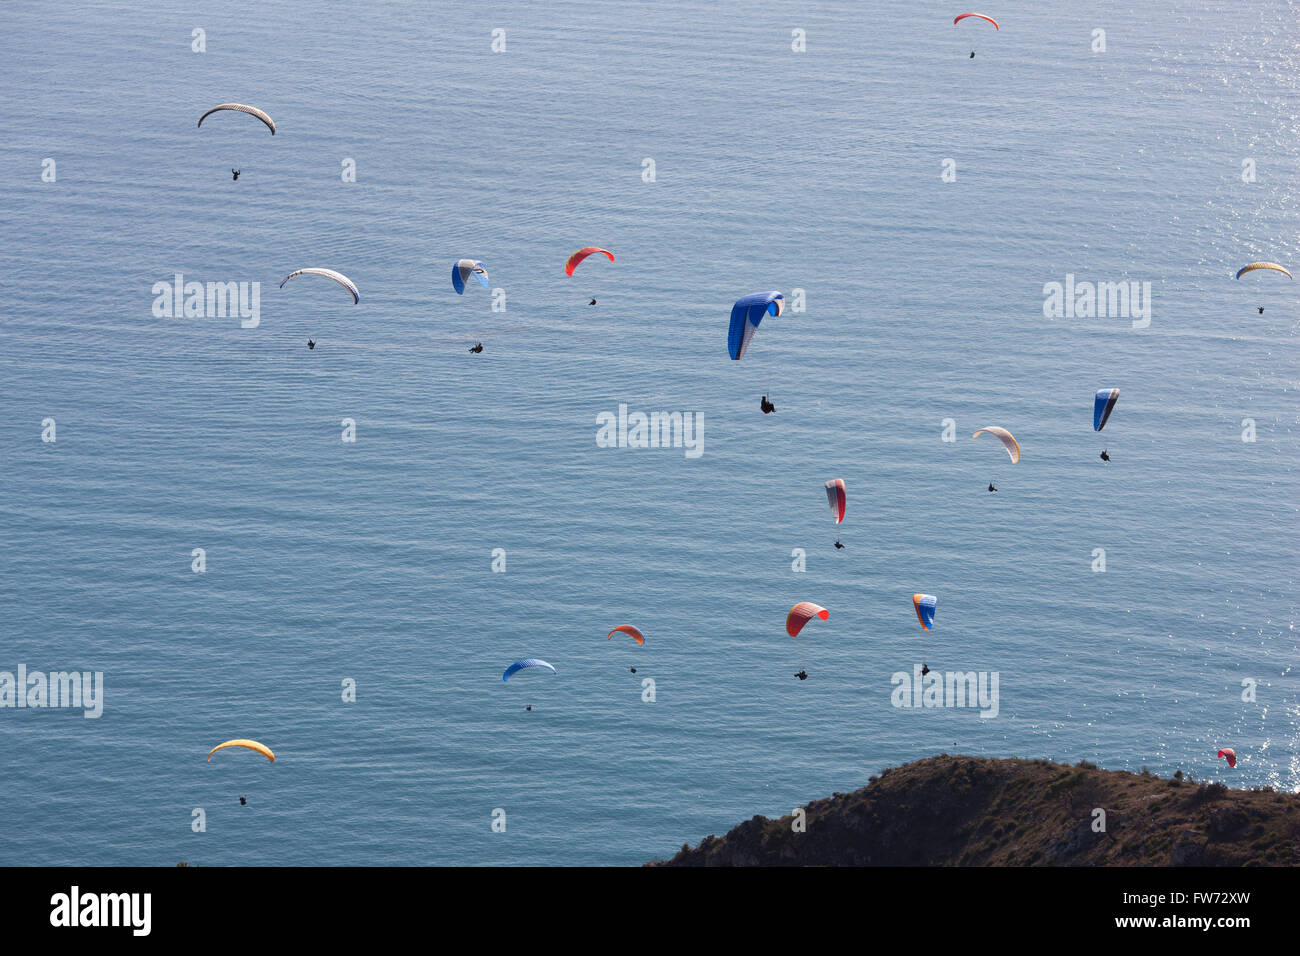 PARAGLIDERS SOARING OVER THE MEDITERRANEAN. Paragliders over the French Riviera, in Roquebrune-Cap-Martin, France. - Stock Image